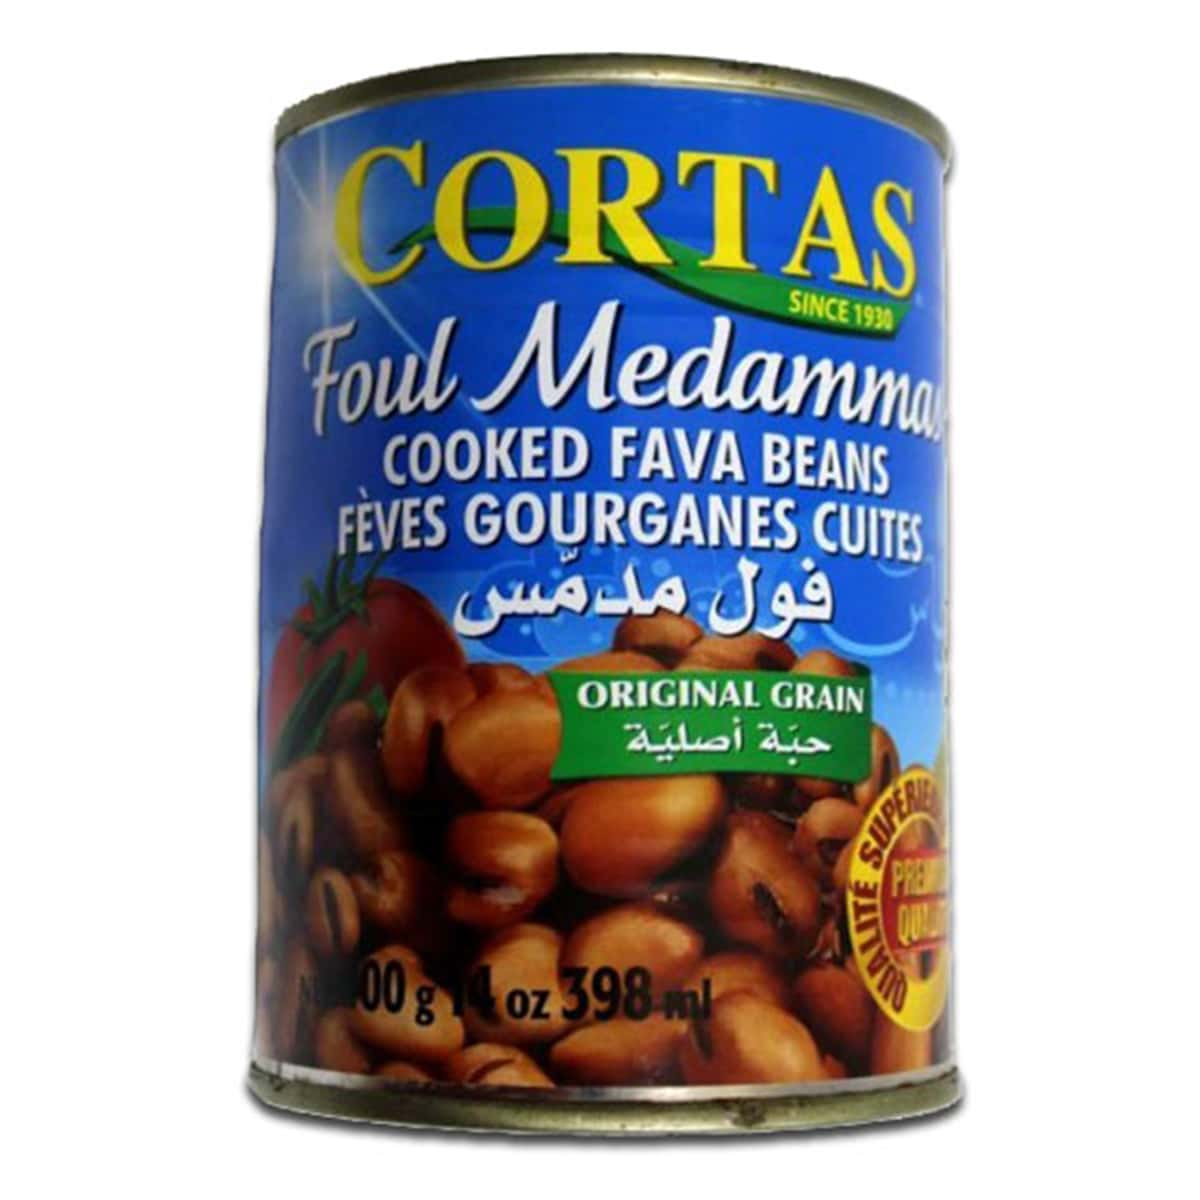 Buy Cortas Foul Medammas (Cooked Fava Beans) Ready to Serve - 400 gm